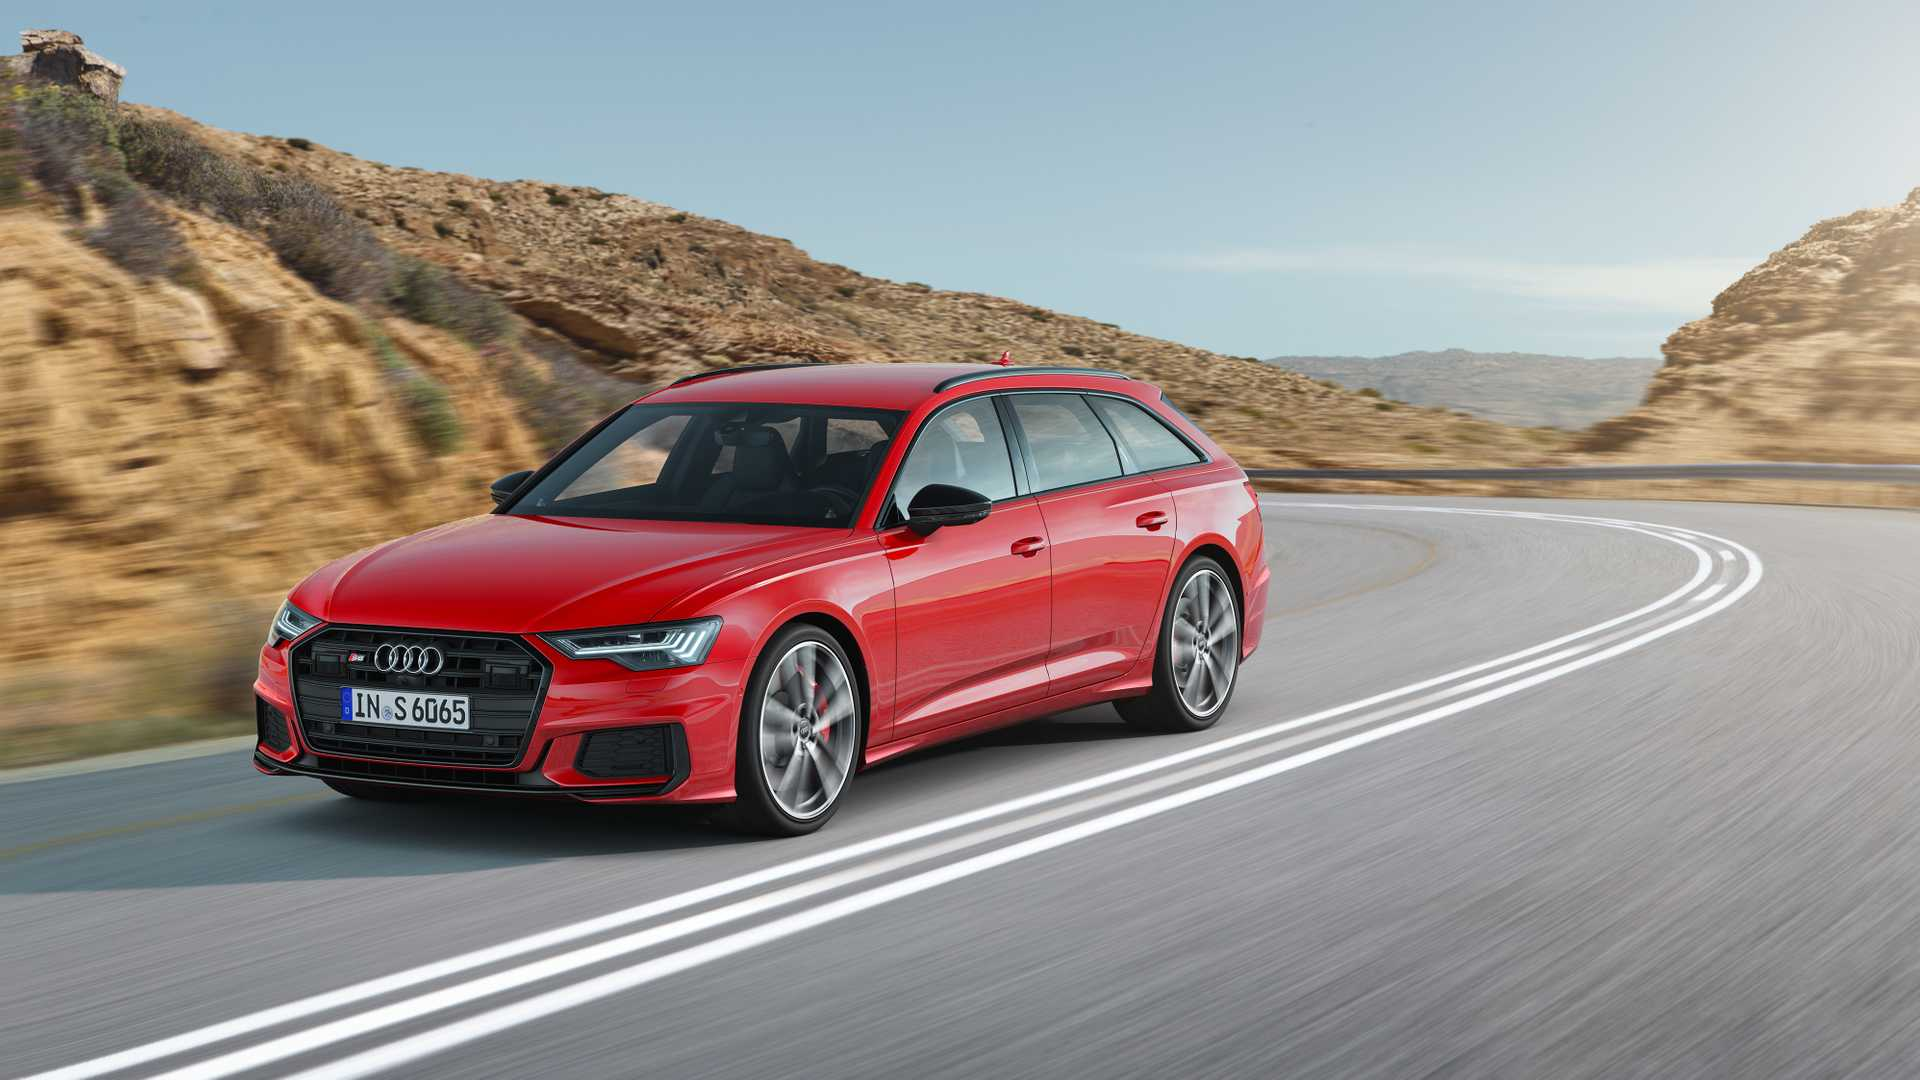 2019 Audi S6 Avant TDI (Color: Tango Red) Front Three-Quarter Wallpapers (2)